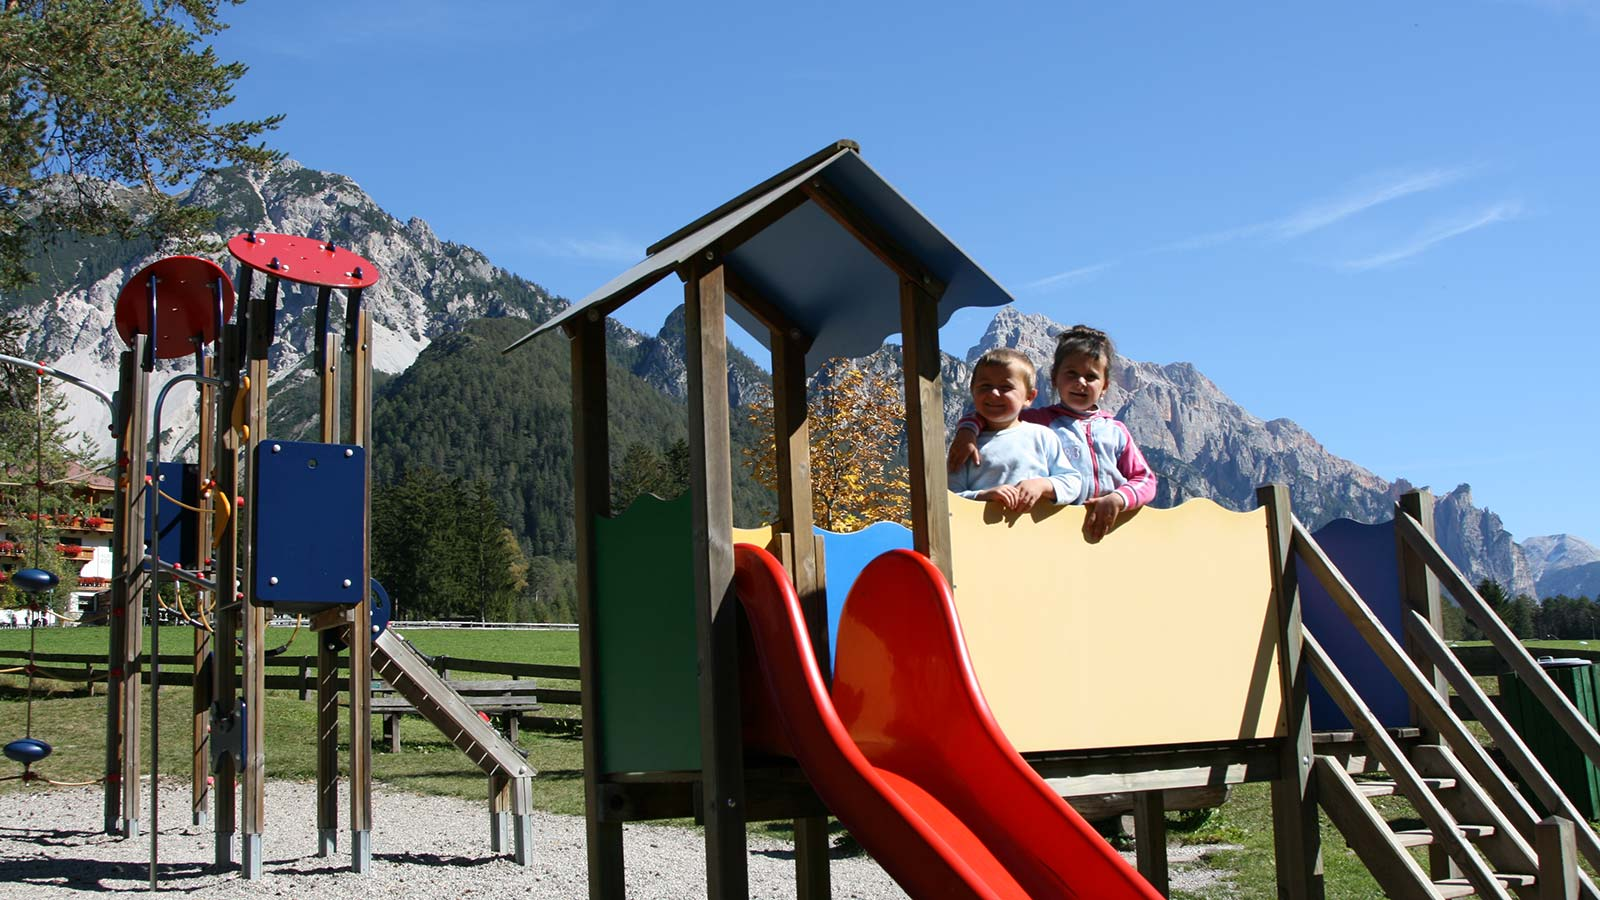 Kids on a slide in the playground